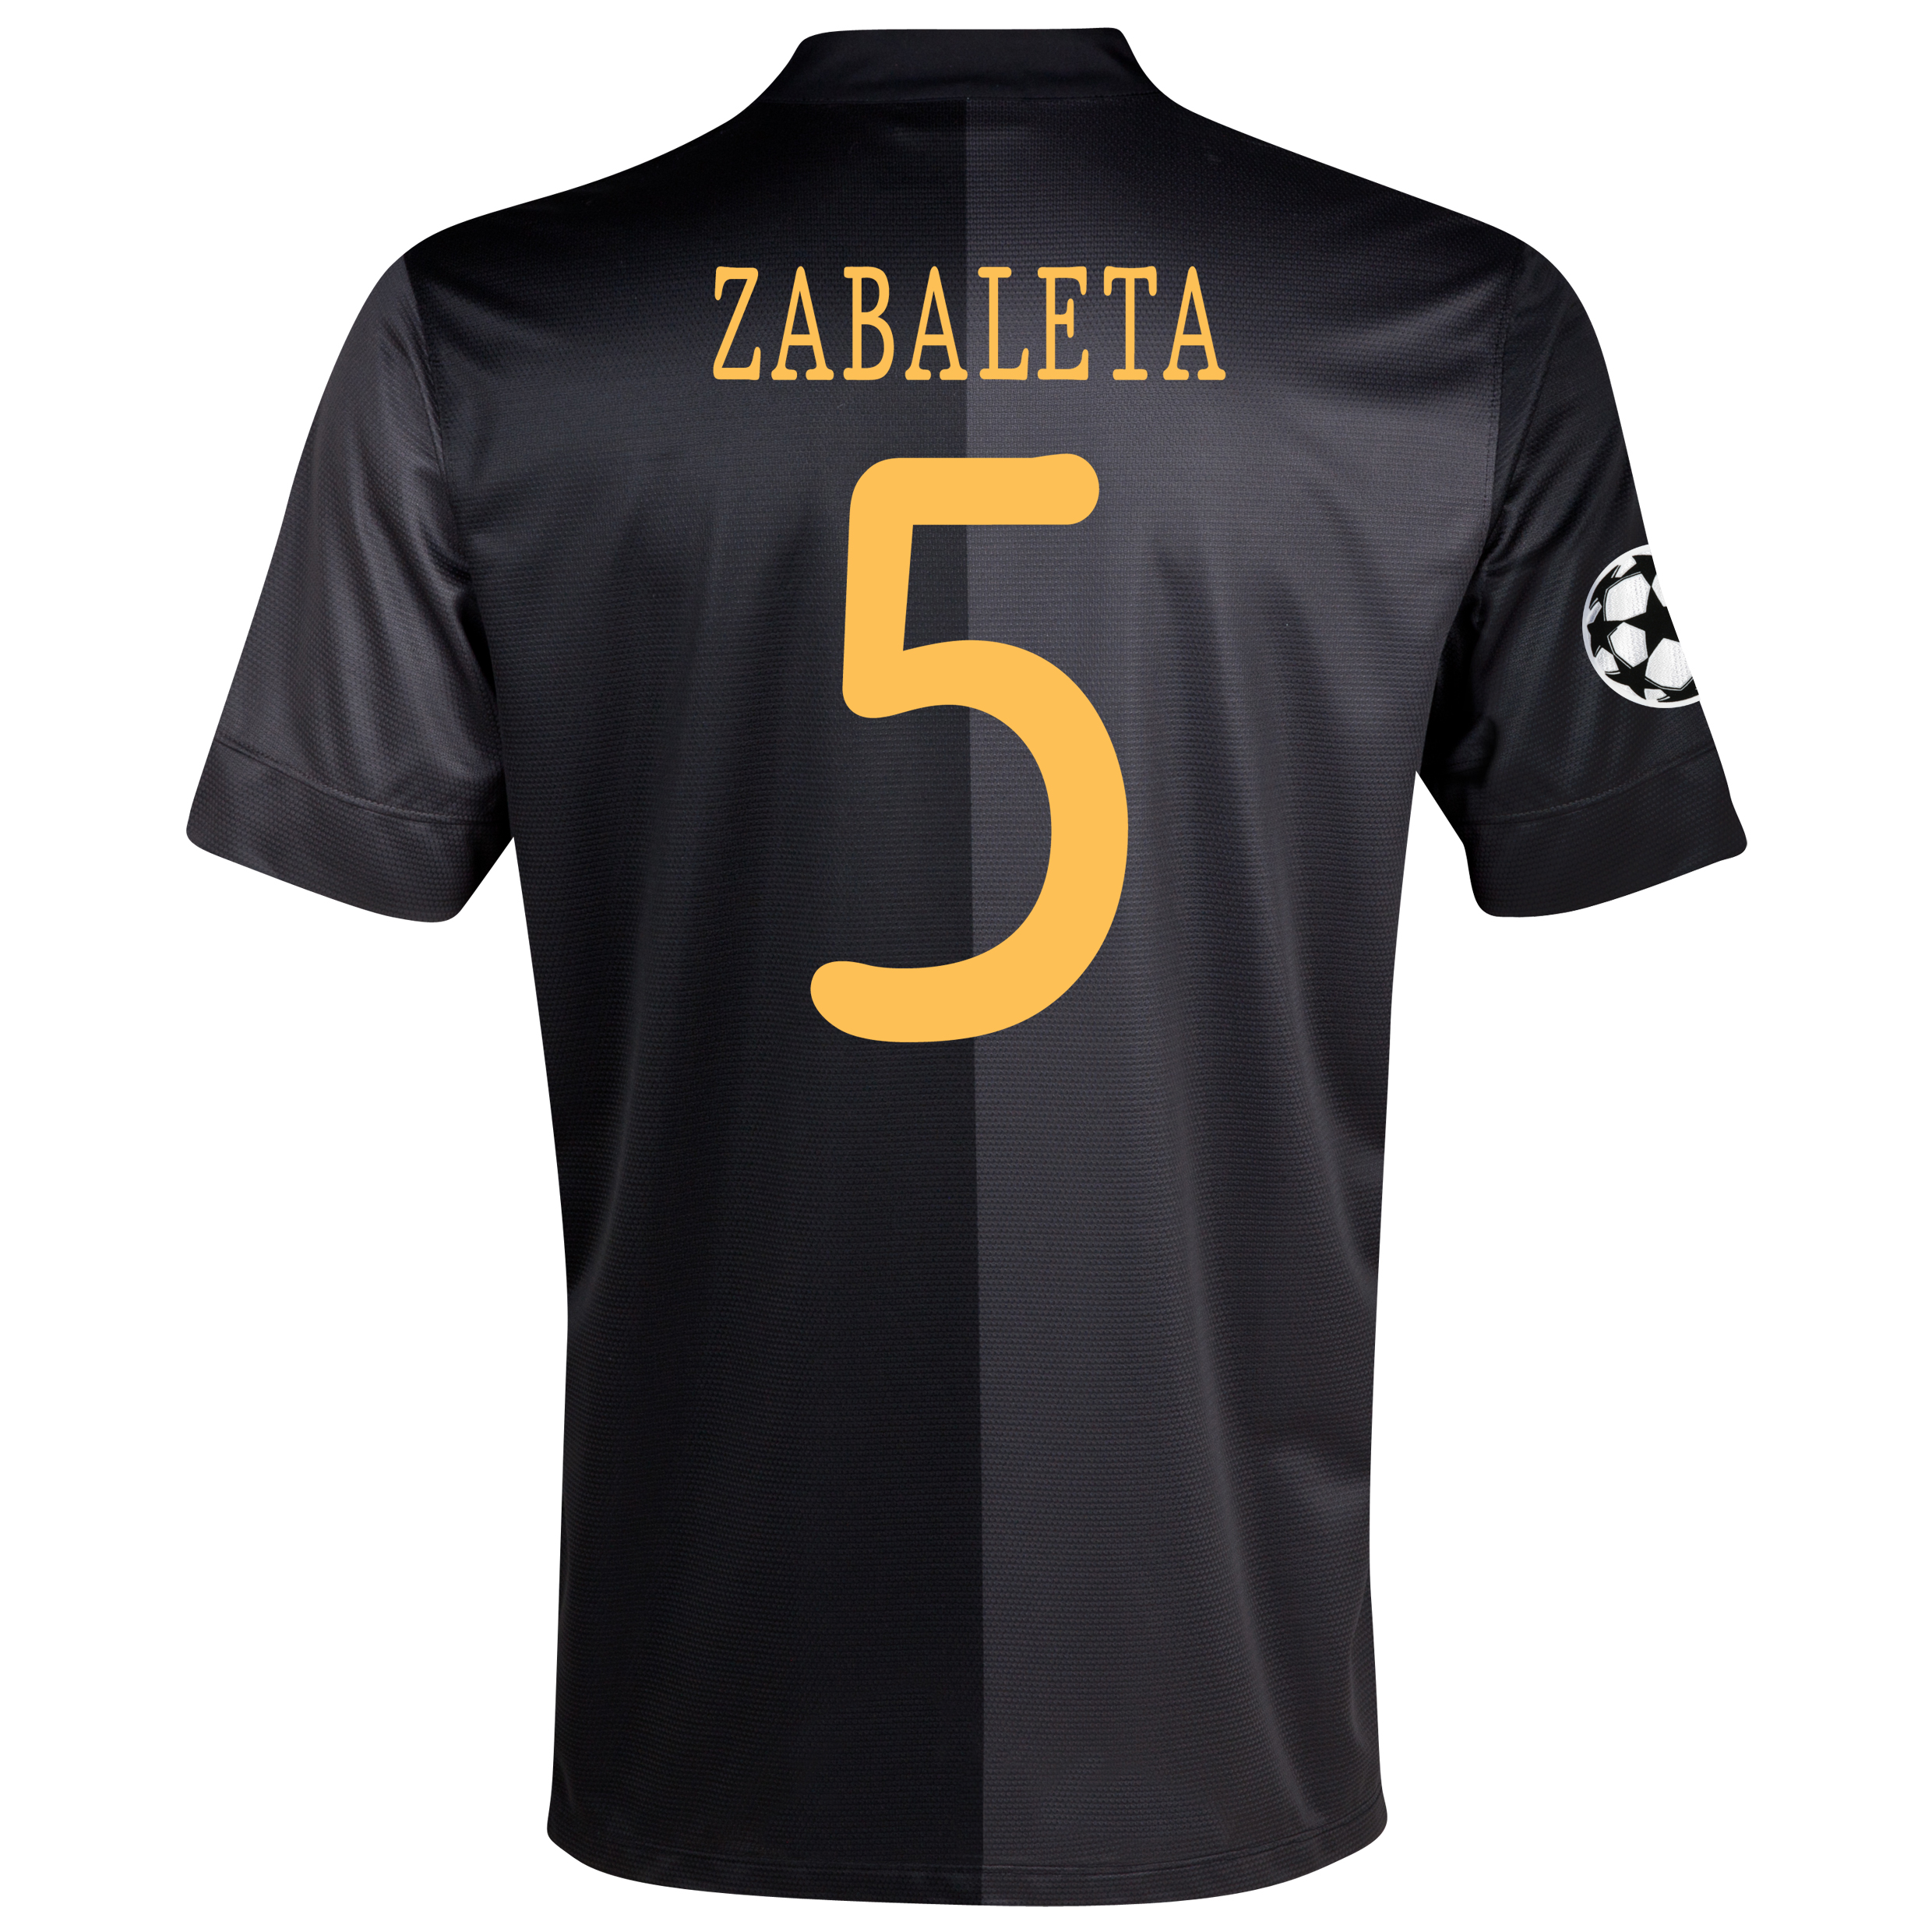 Manchester City UEFA Champions League Away Shirt 2013/14 - Junior with Zabaleta 5 printing